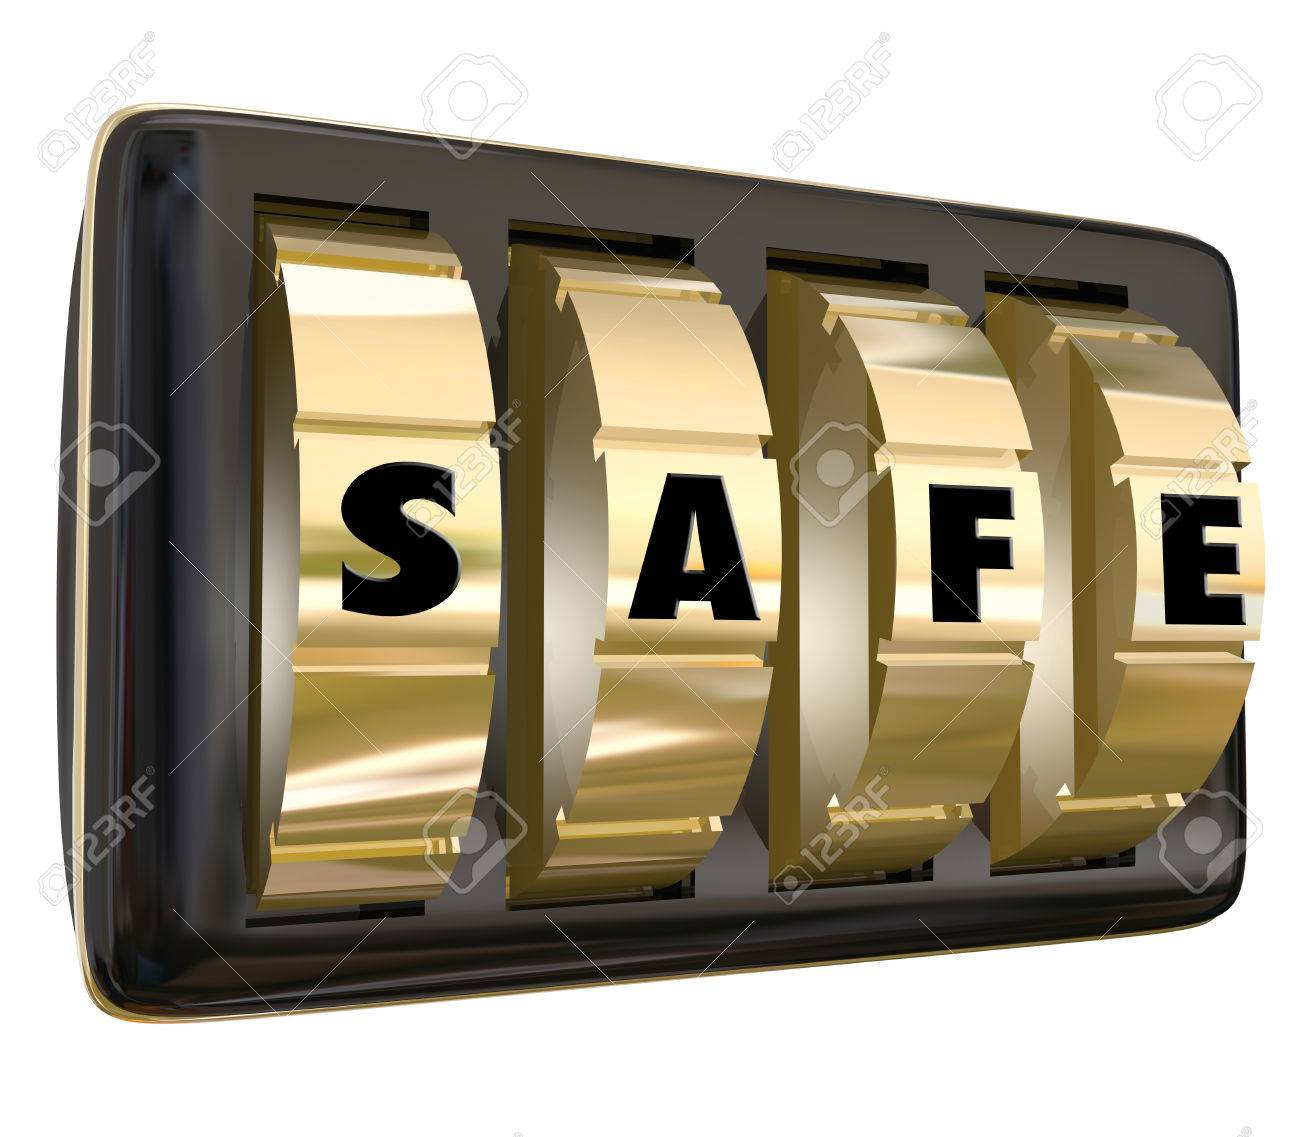 Safe word on gold dials of a lock to keep your information, documents or  valuables